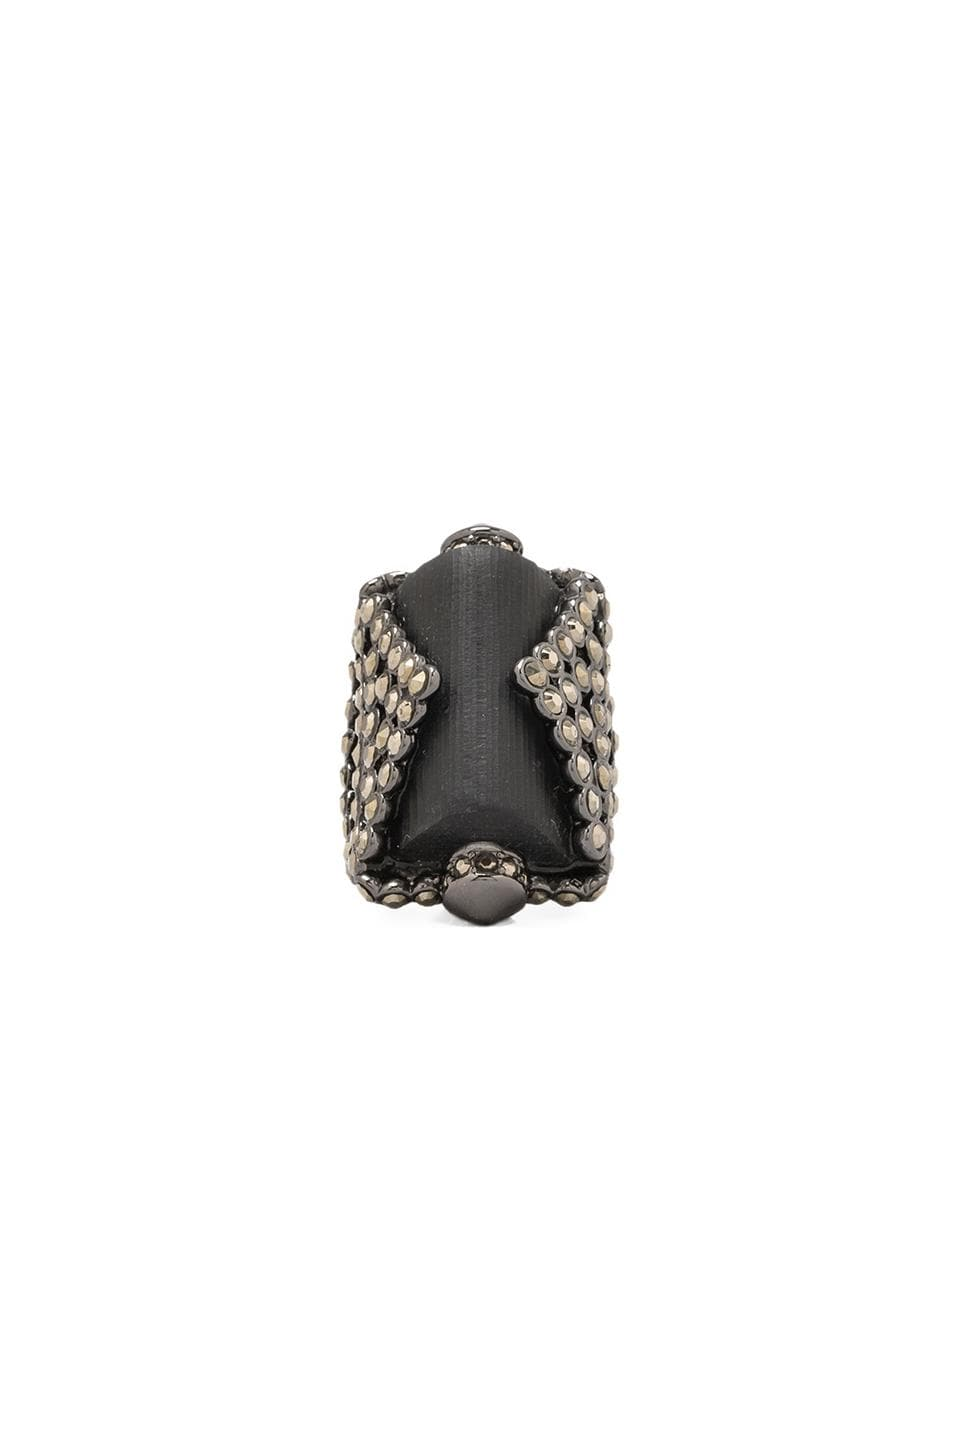 Alexis Bittar Santa Fe Deco Rectangular Prism Ring in Black